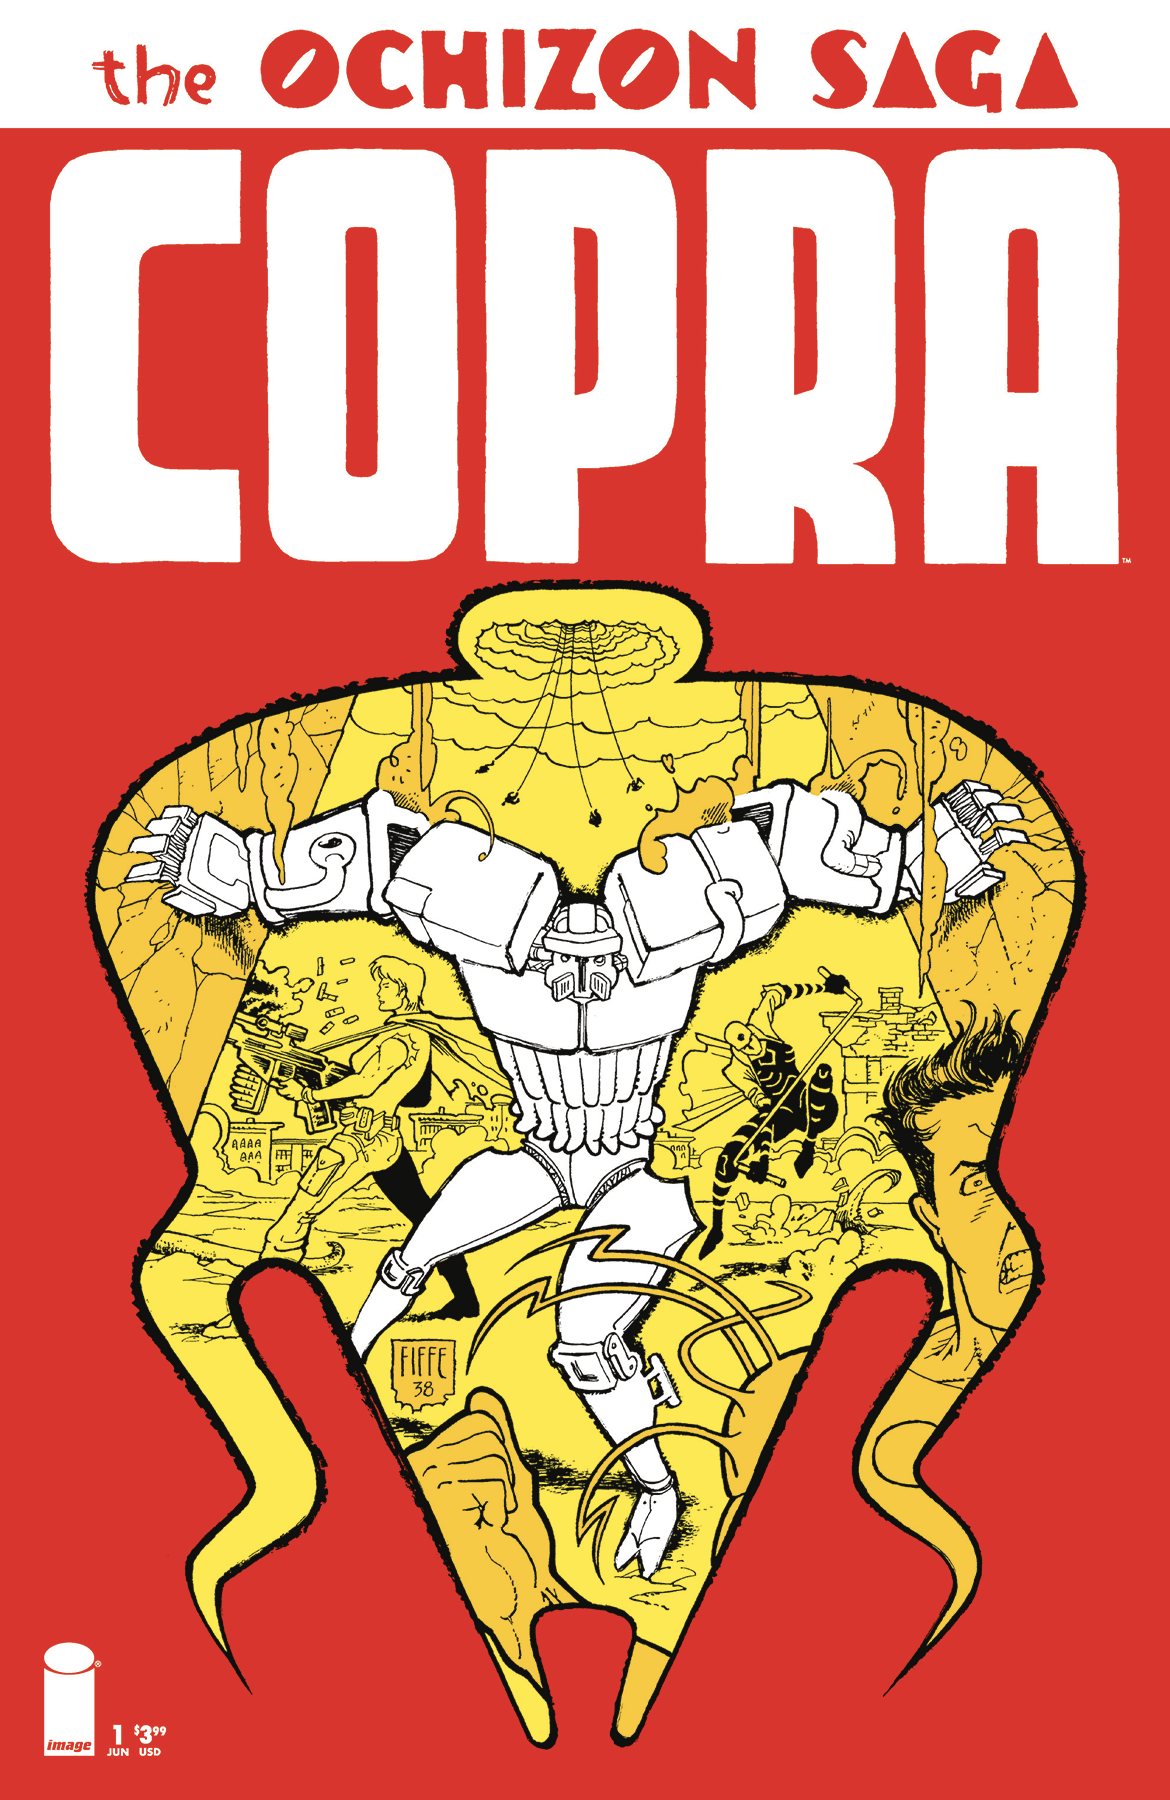 COPRA OCHIZON SAGA #1 (OF 4)